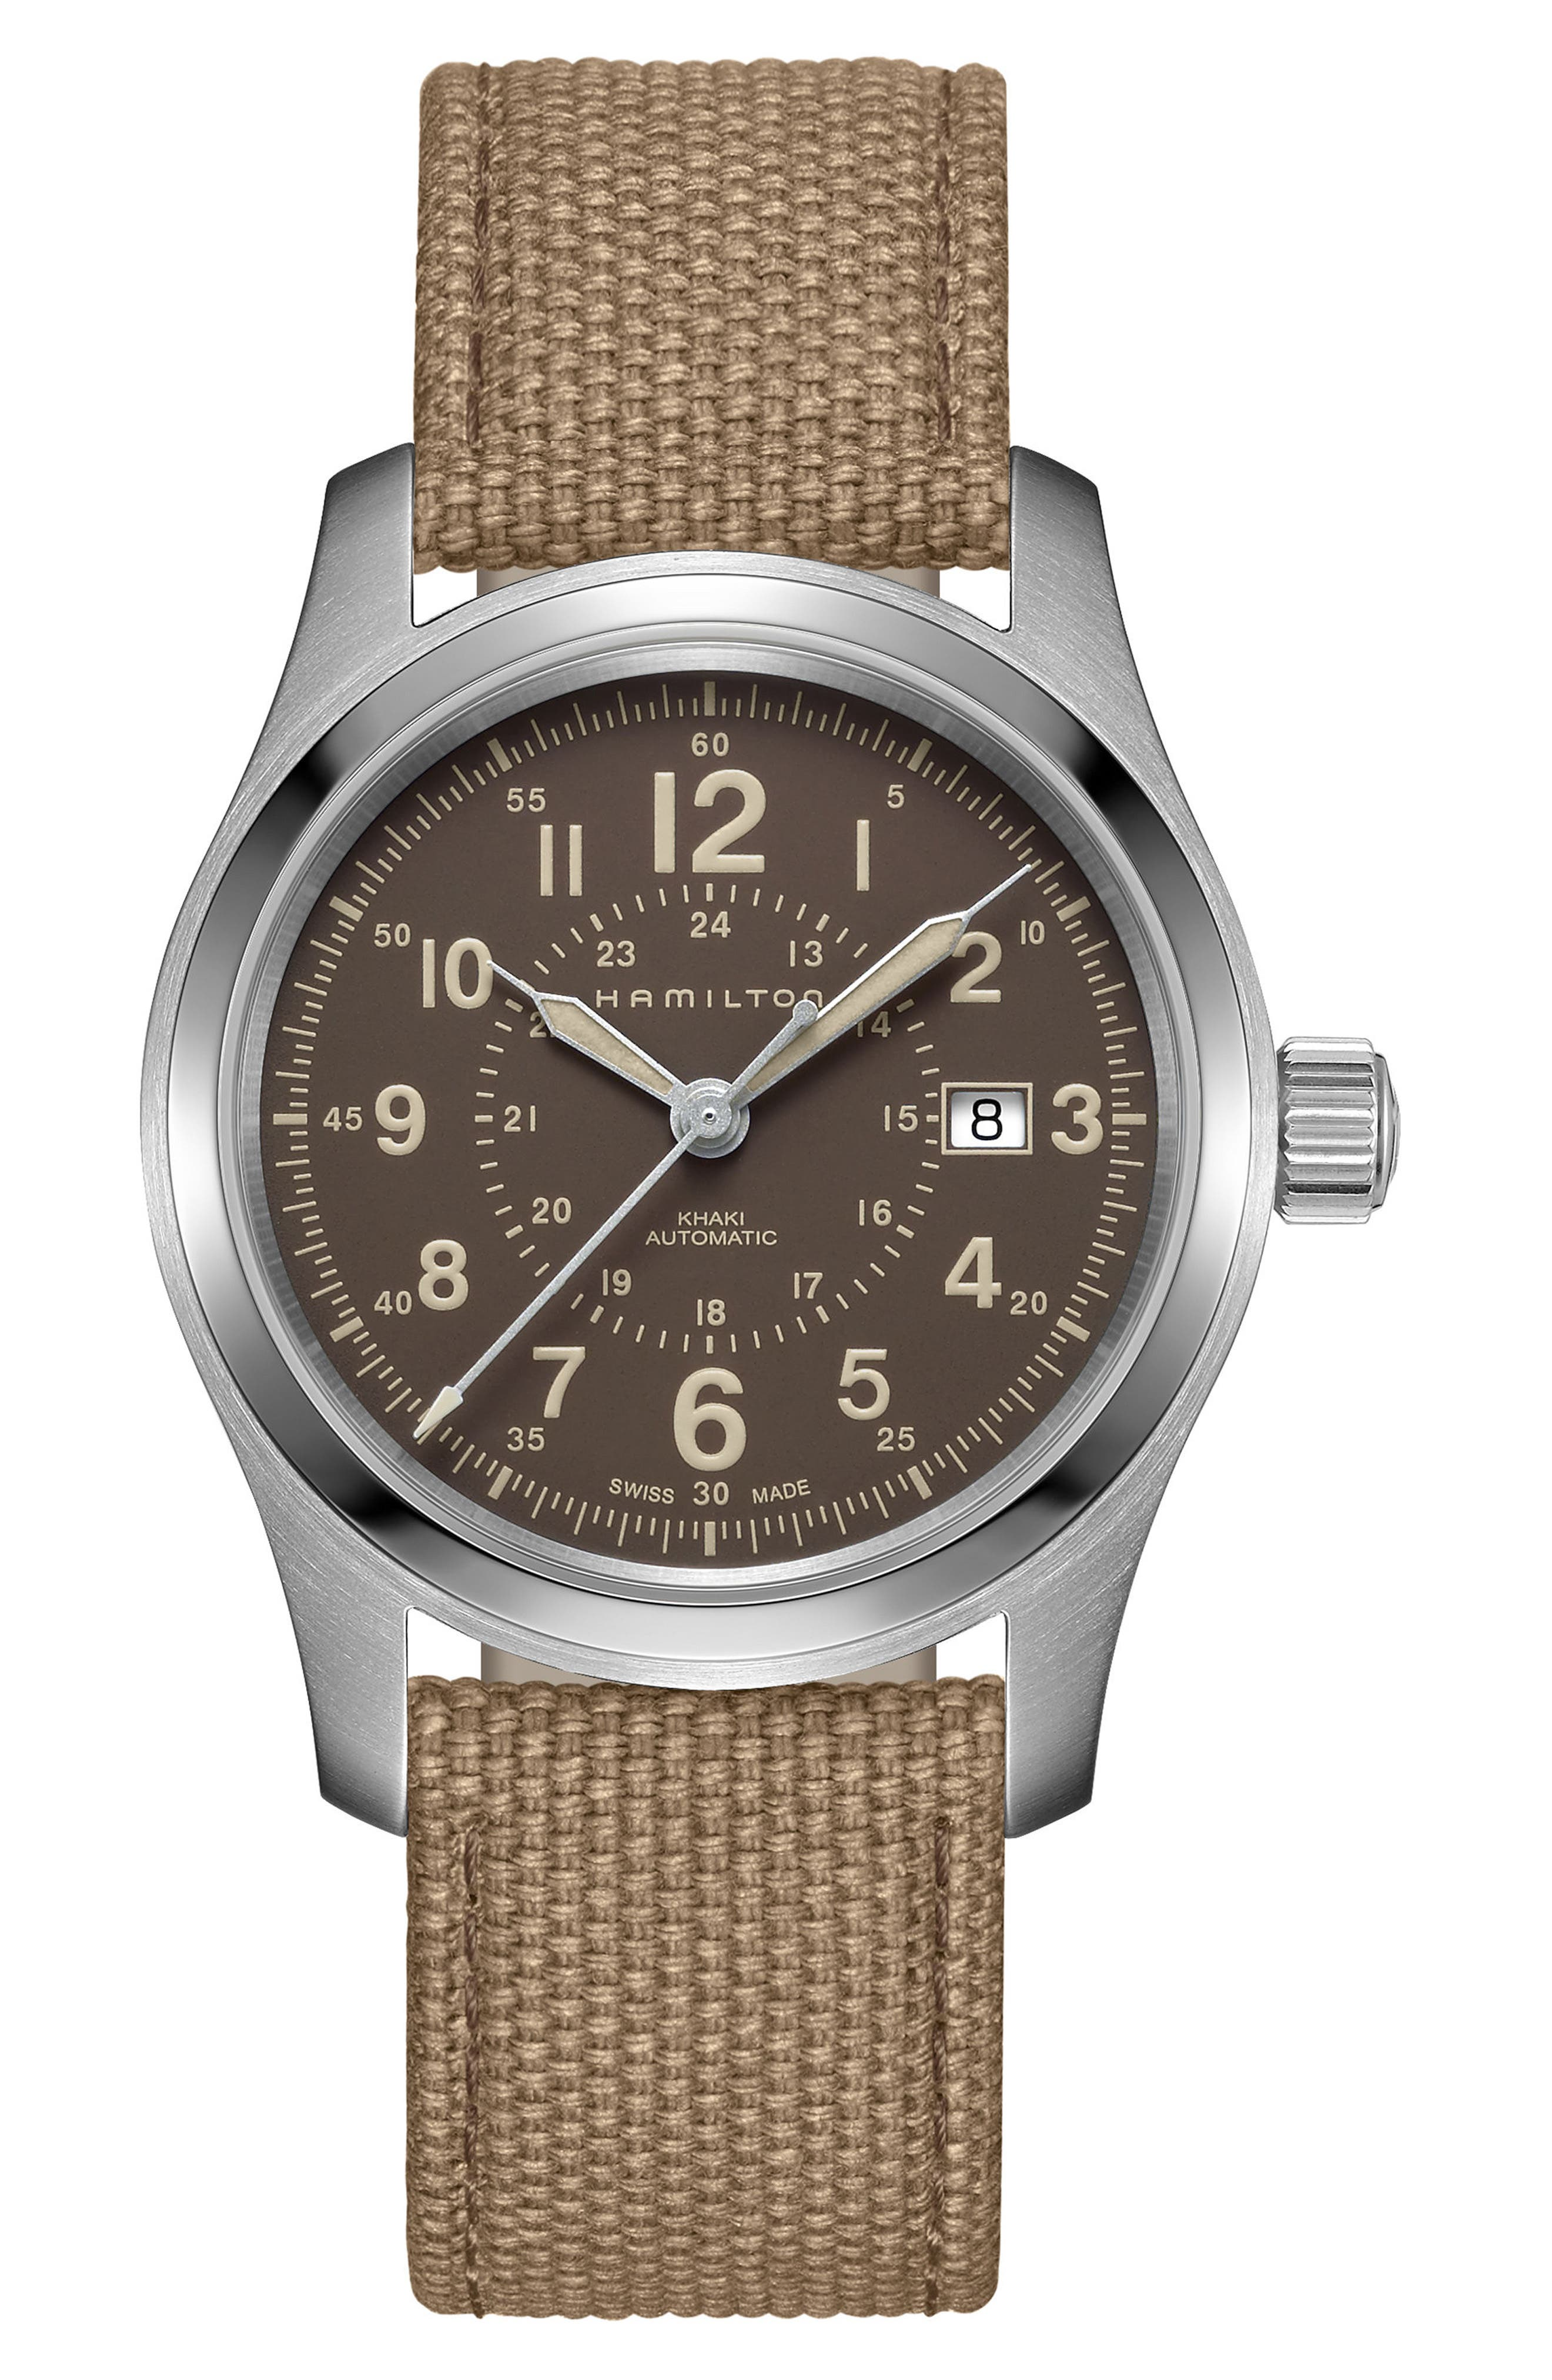 Khaki Field Automatic Canvas Strap Watch, 42mm,                         Main,                         color, Beige/ Brown/ Silver